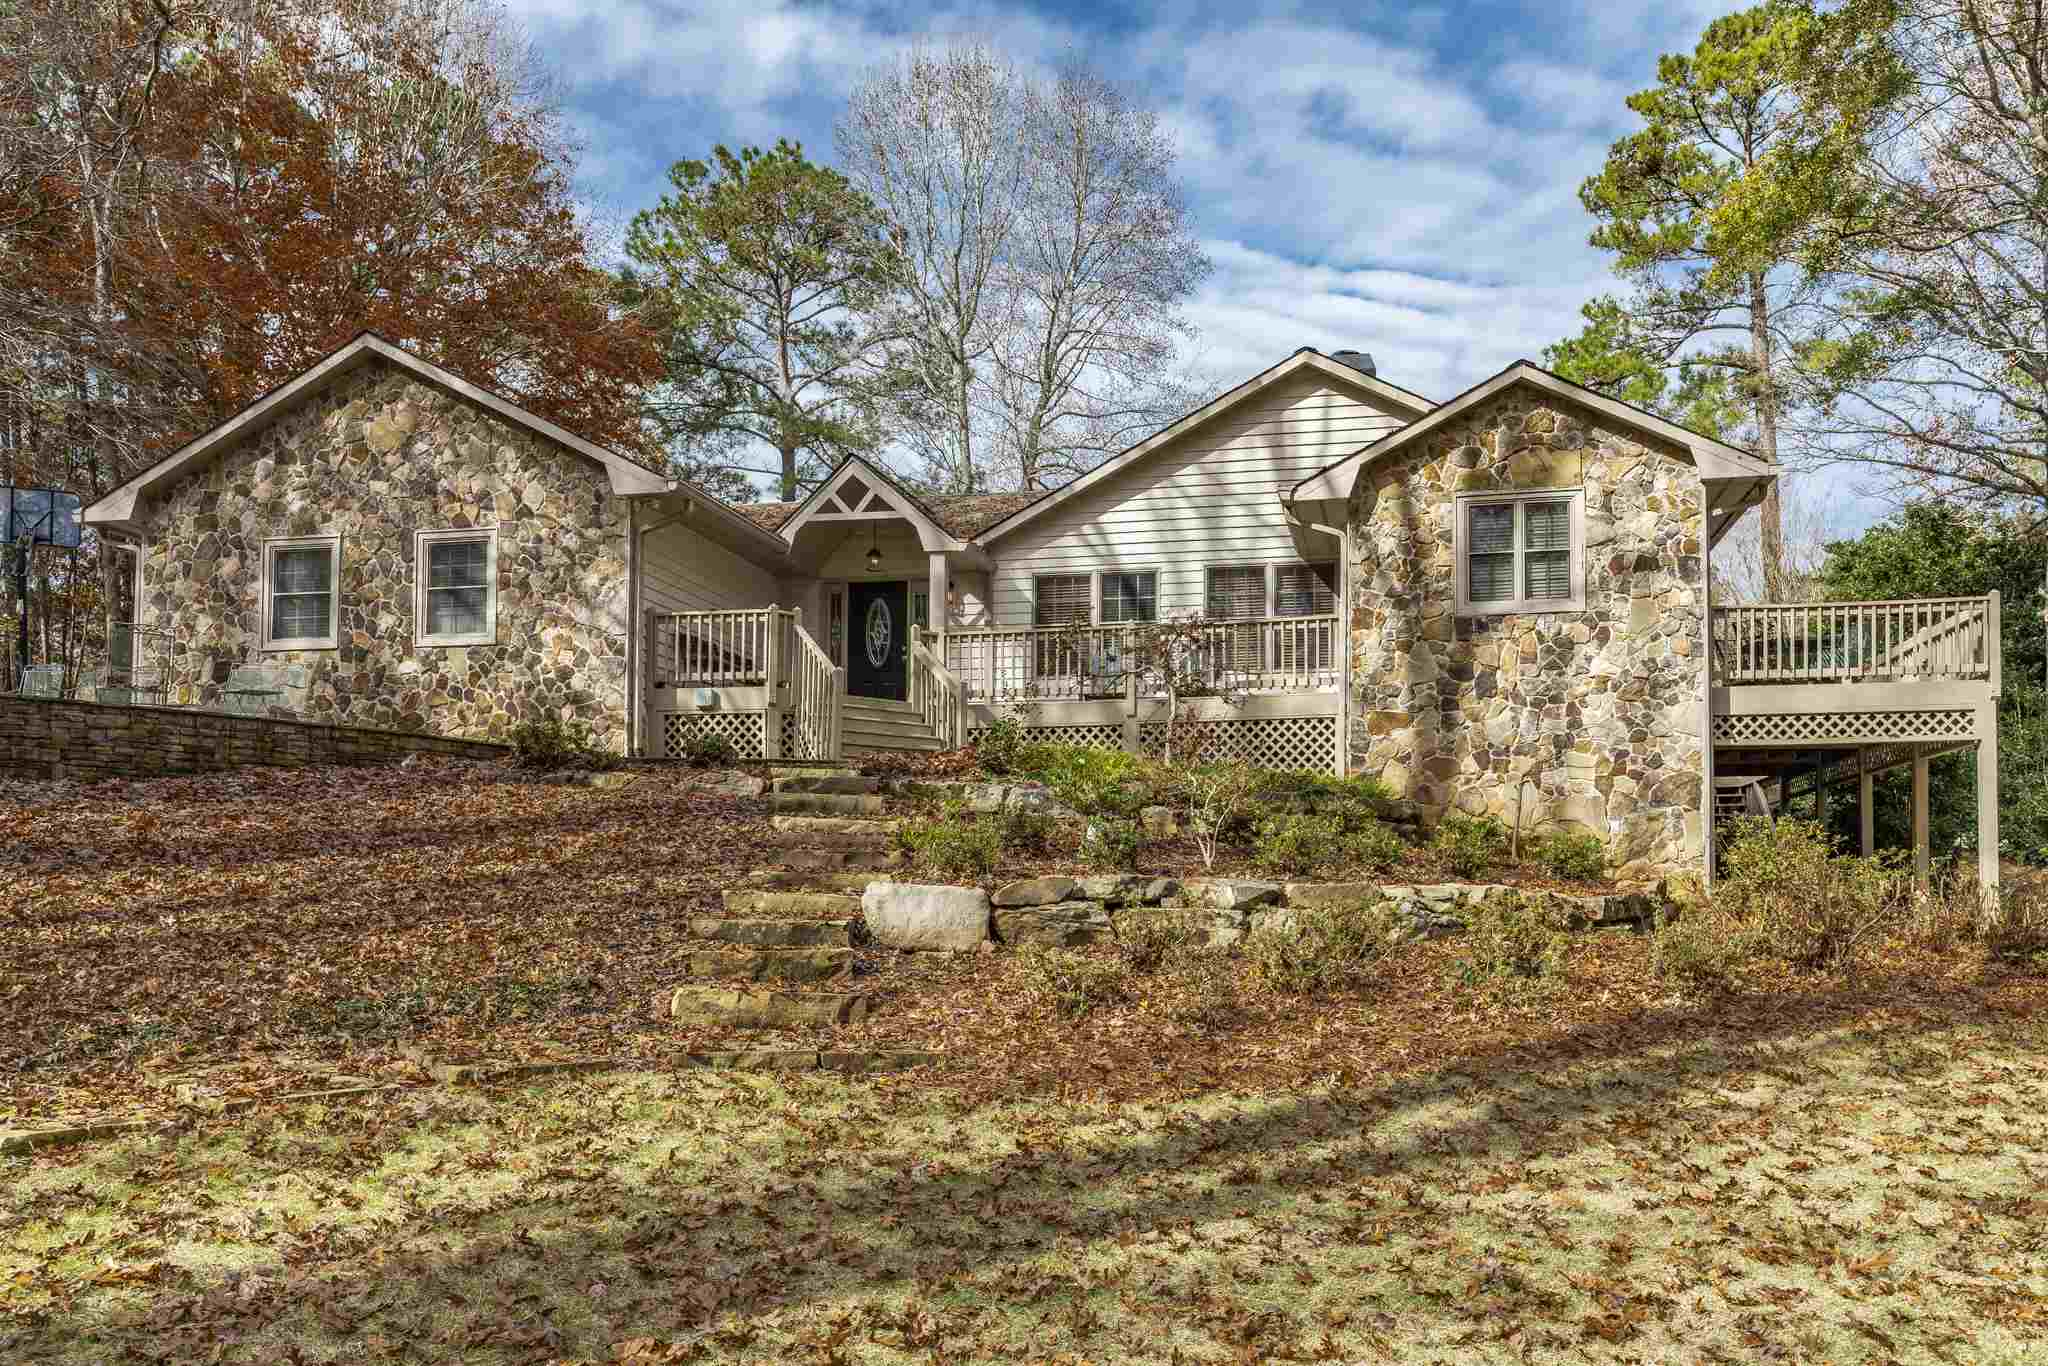 1301 ANCHOR BAY DRIVE, Lake Oconee Reynolds Landing in Greene County, GA 30642 Home for Sale